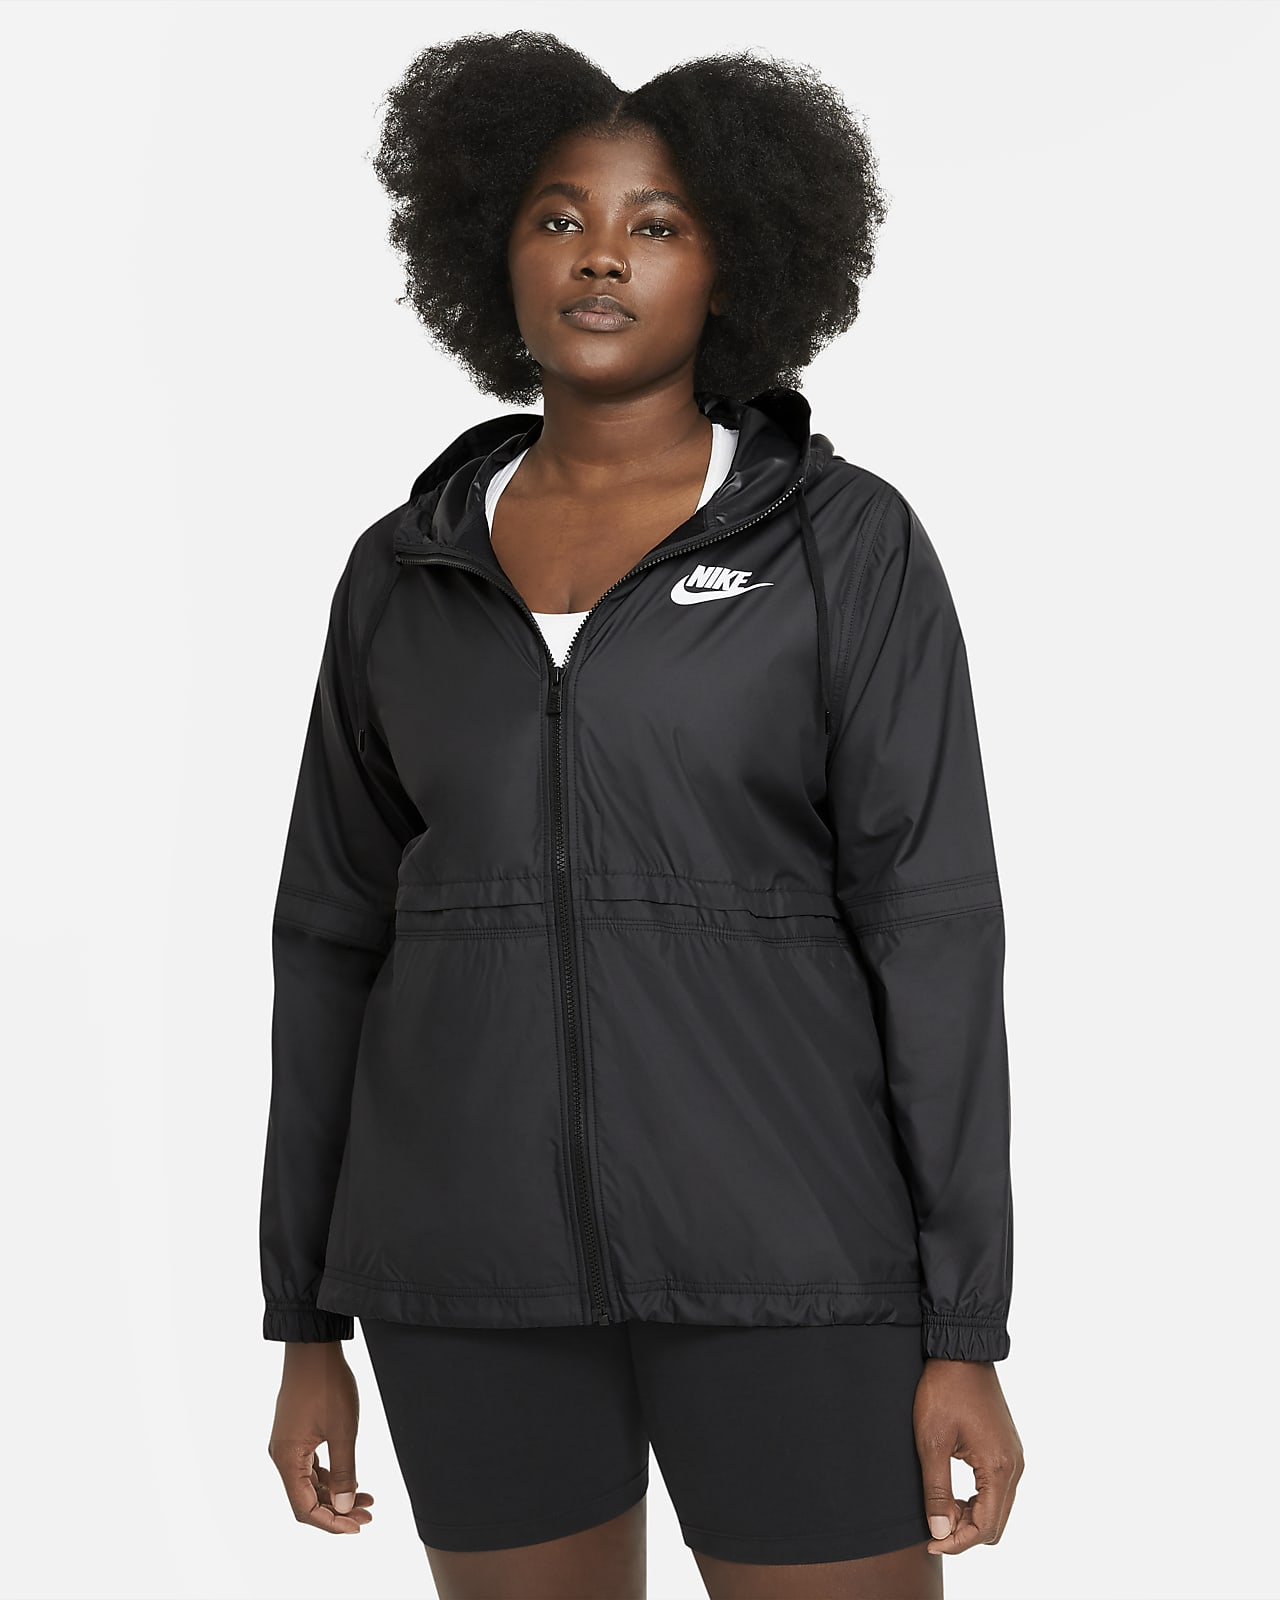 Nike Sportswear Women's Woven Jacket (Plus size)